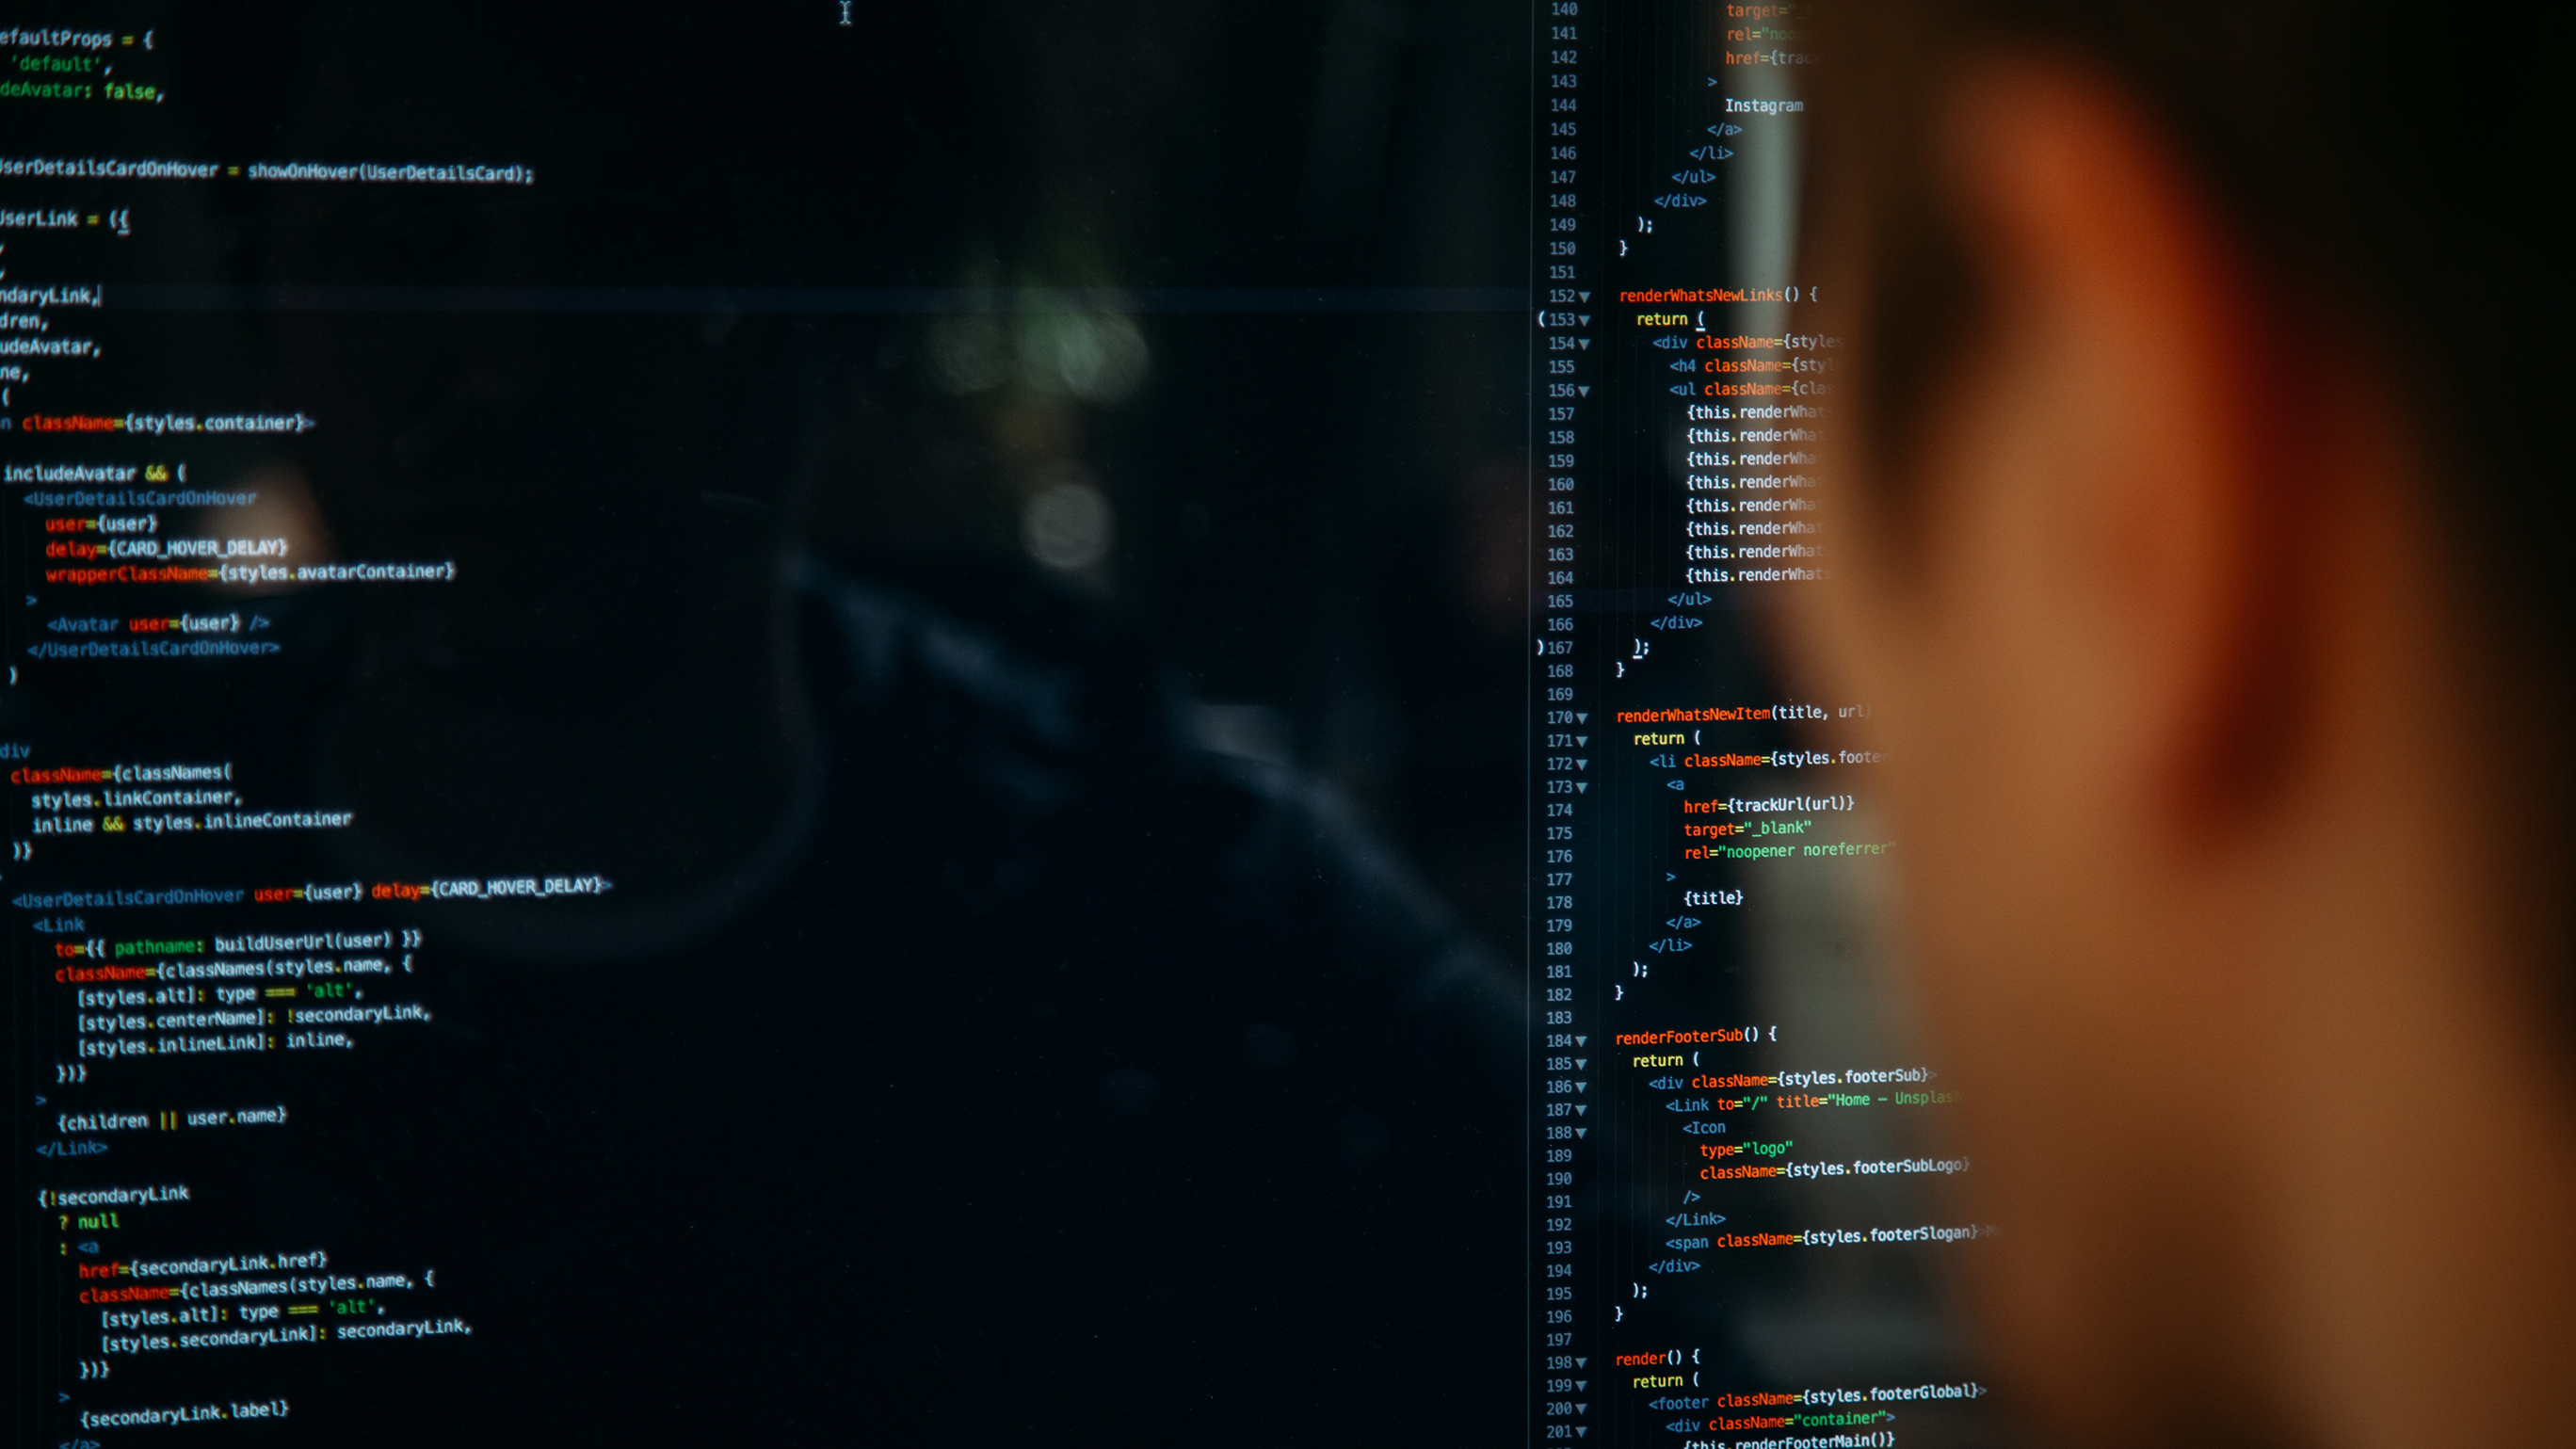 Automating networks with intent, AI, and machine learning